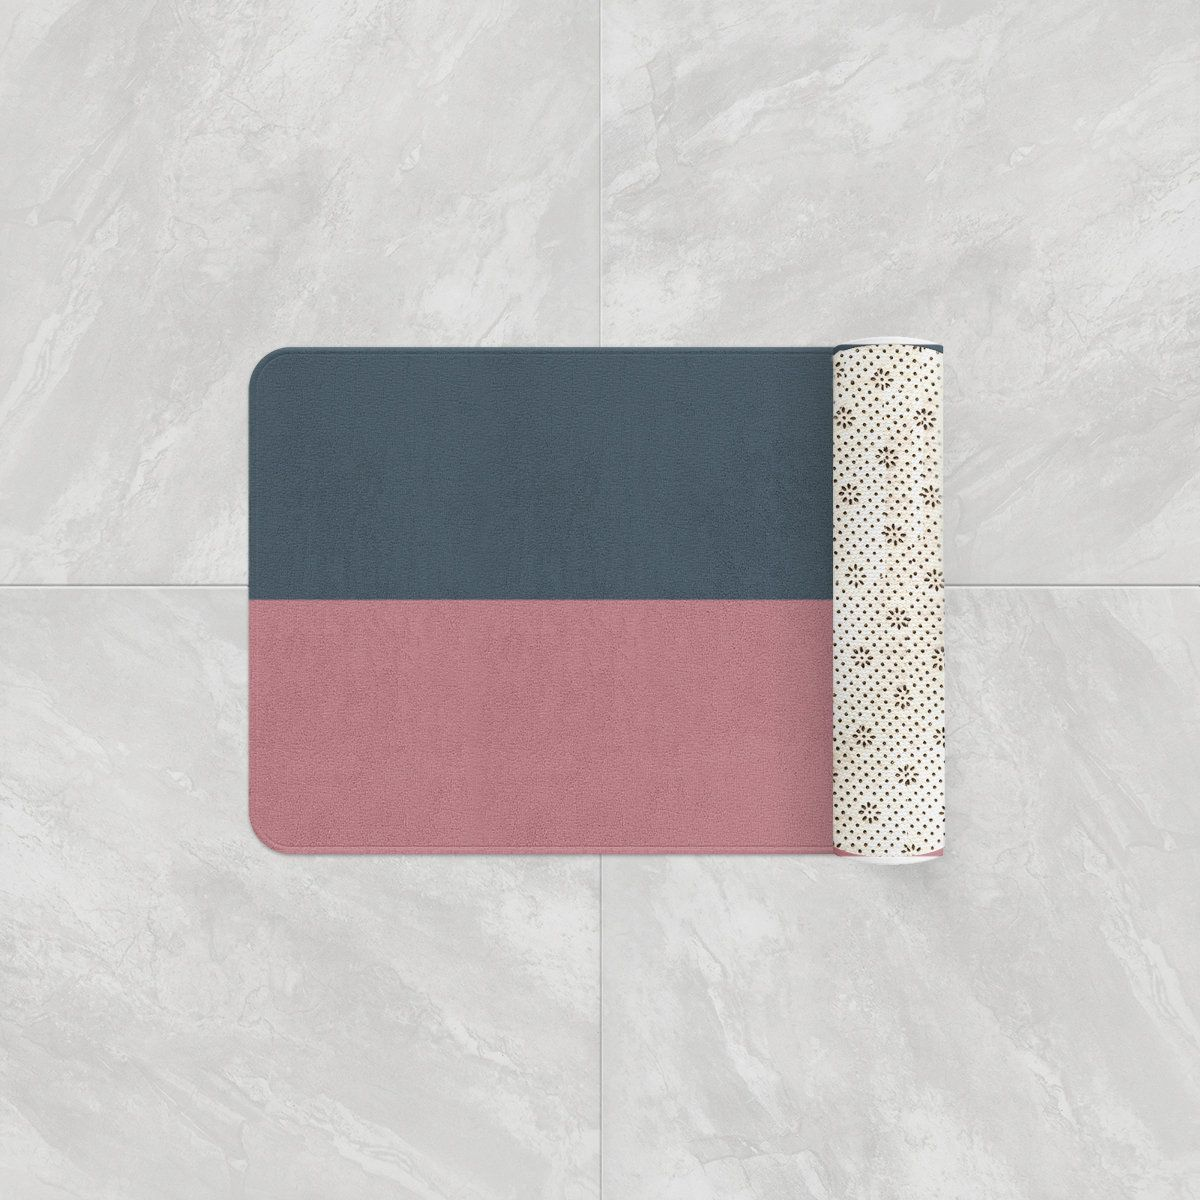 Charcoal Gray Dusty Rose Two Toned Bath Mats Absorbent Color